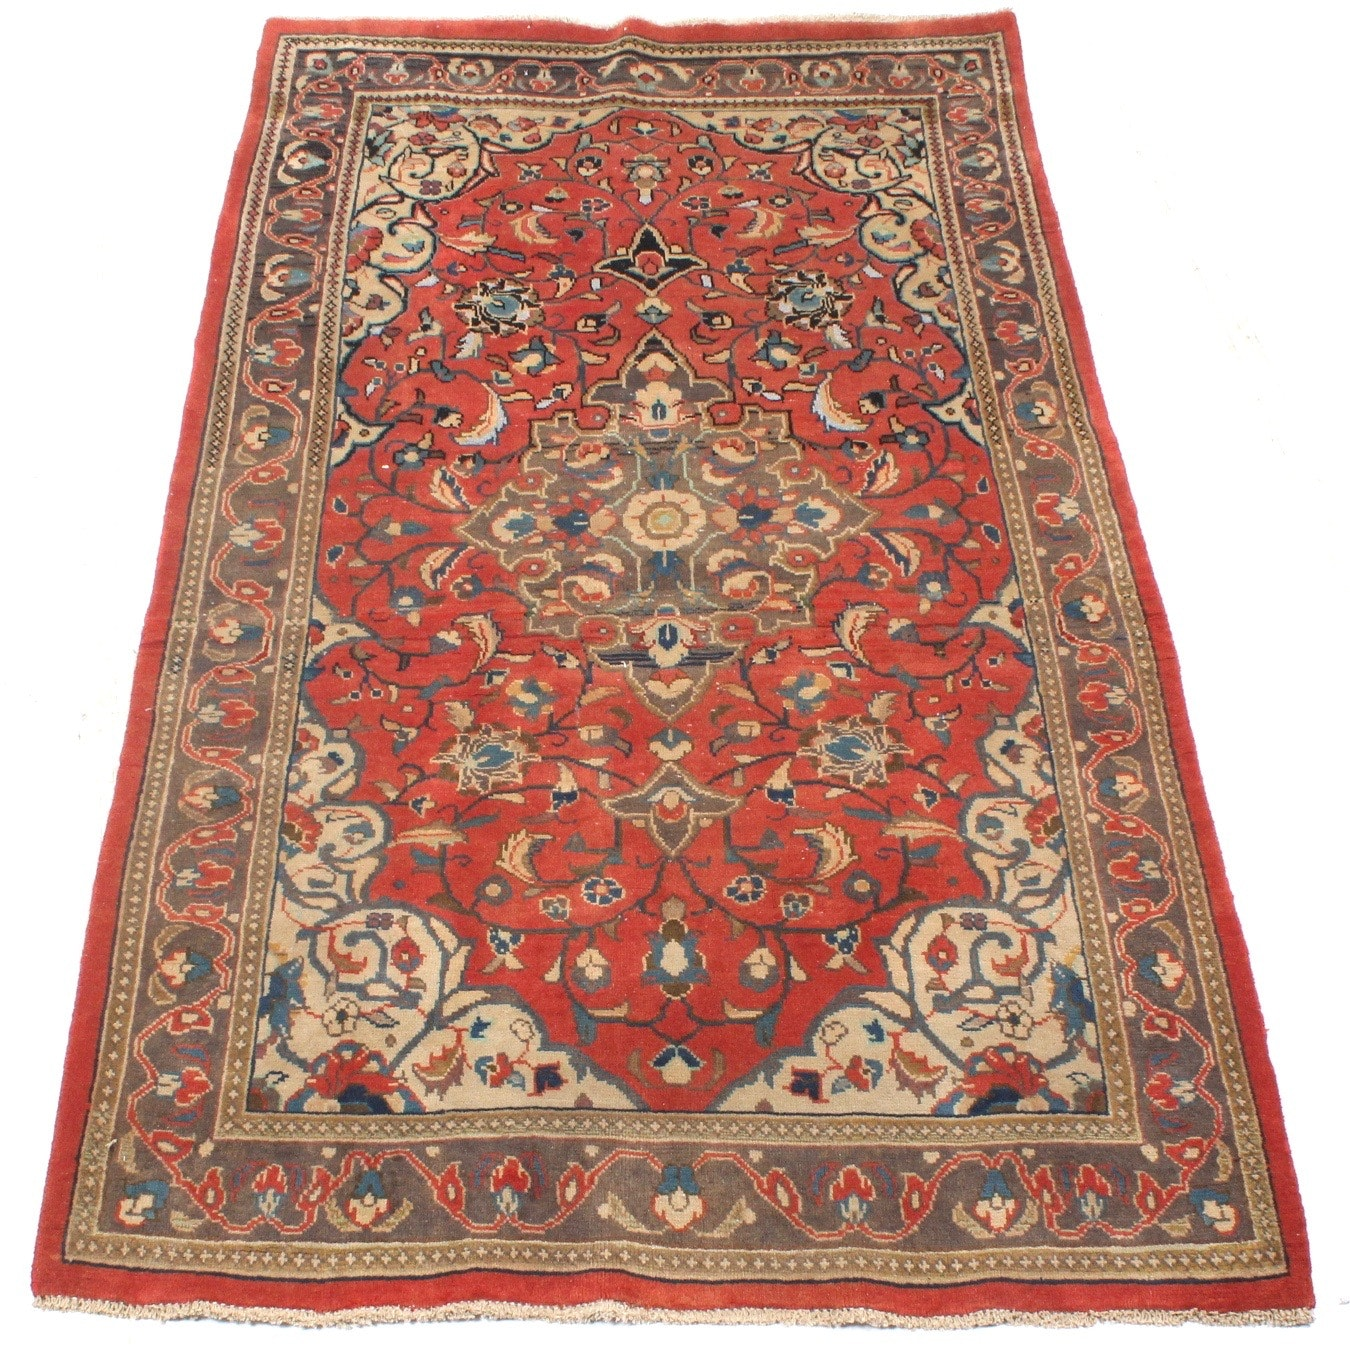 Semi-Antique Hand-Knotted Persian Sarouk Rug